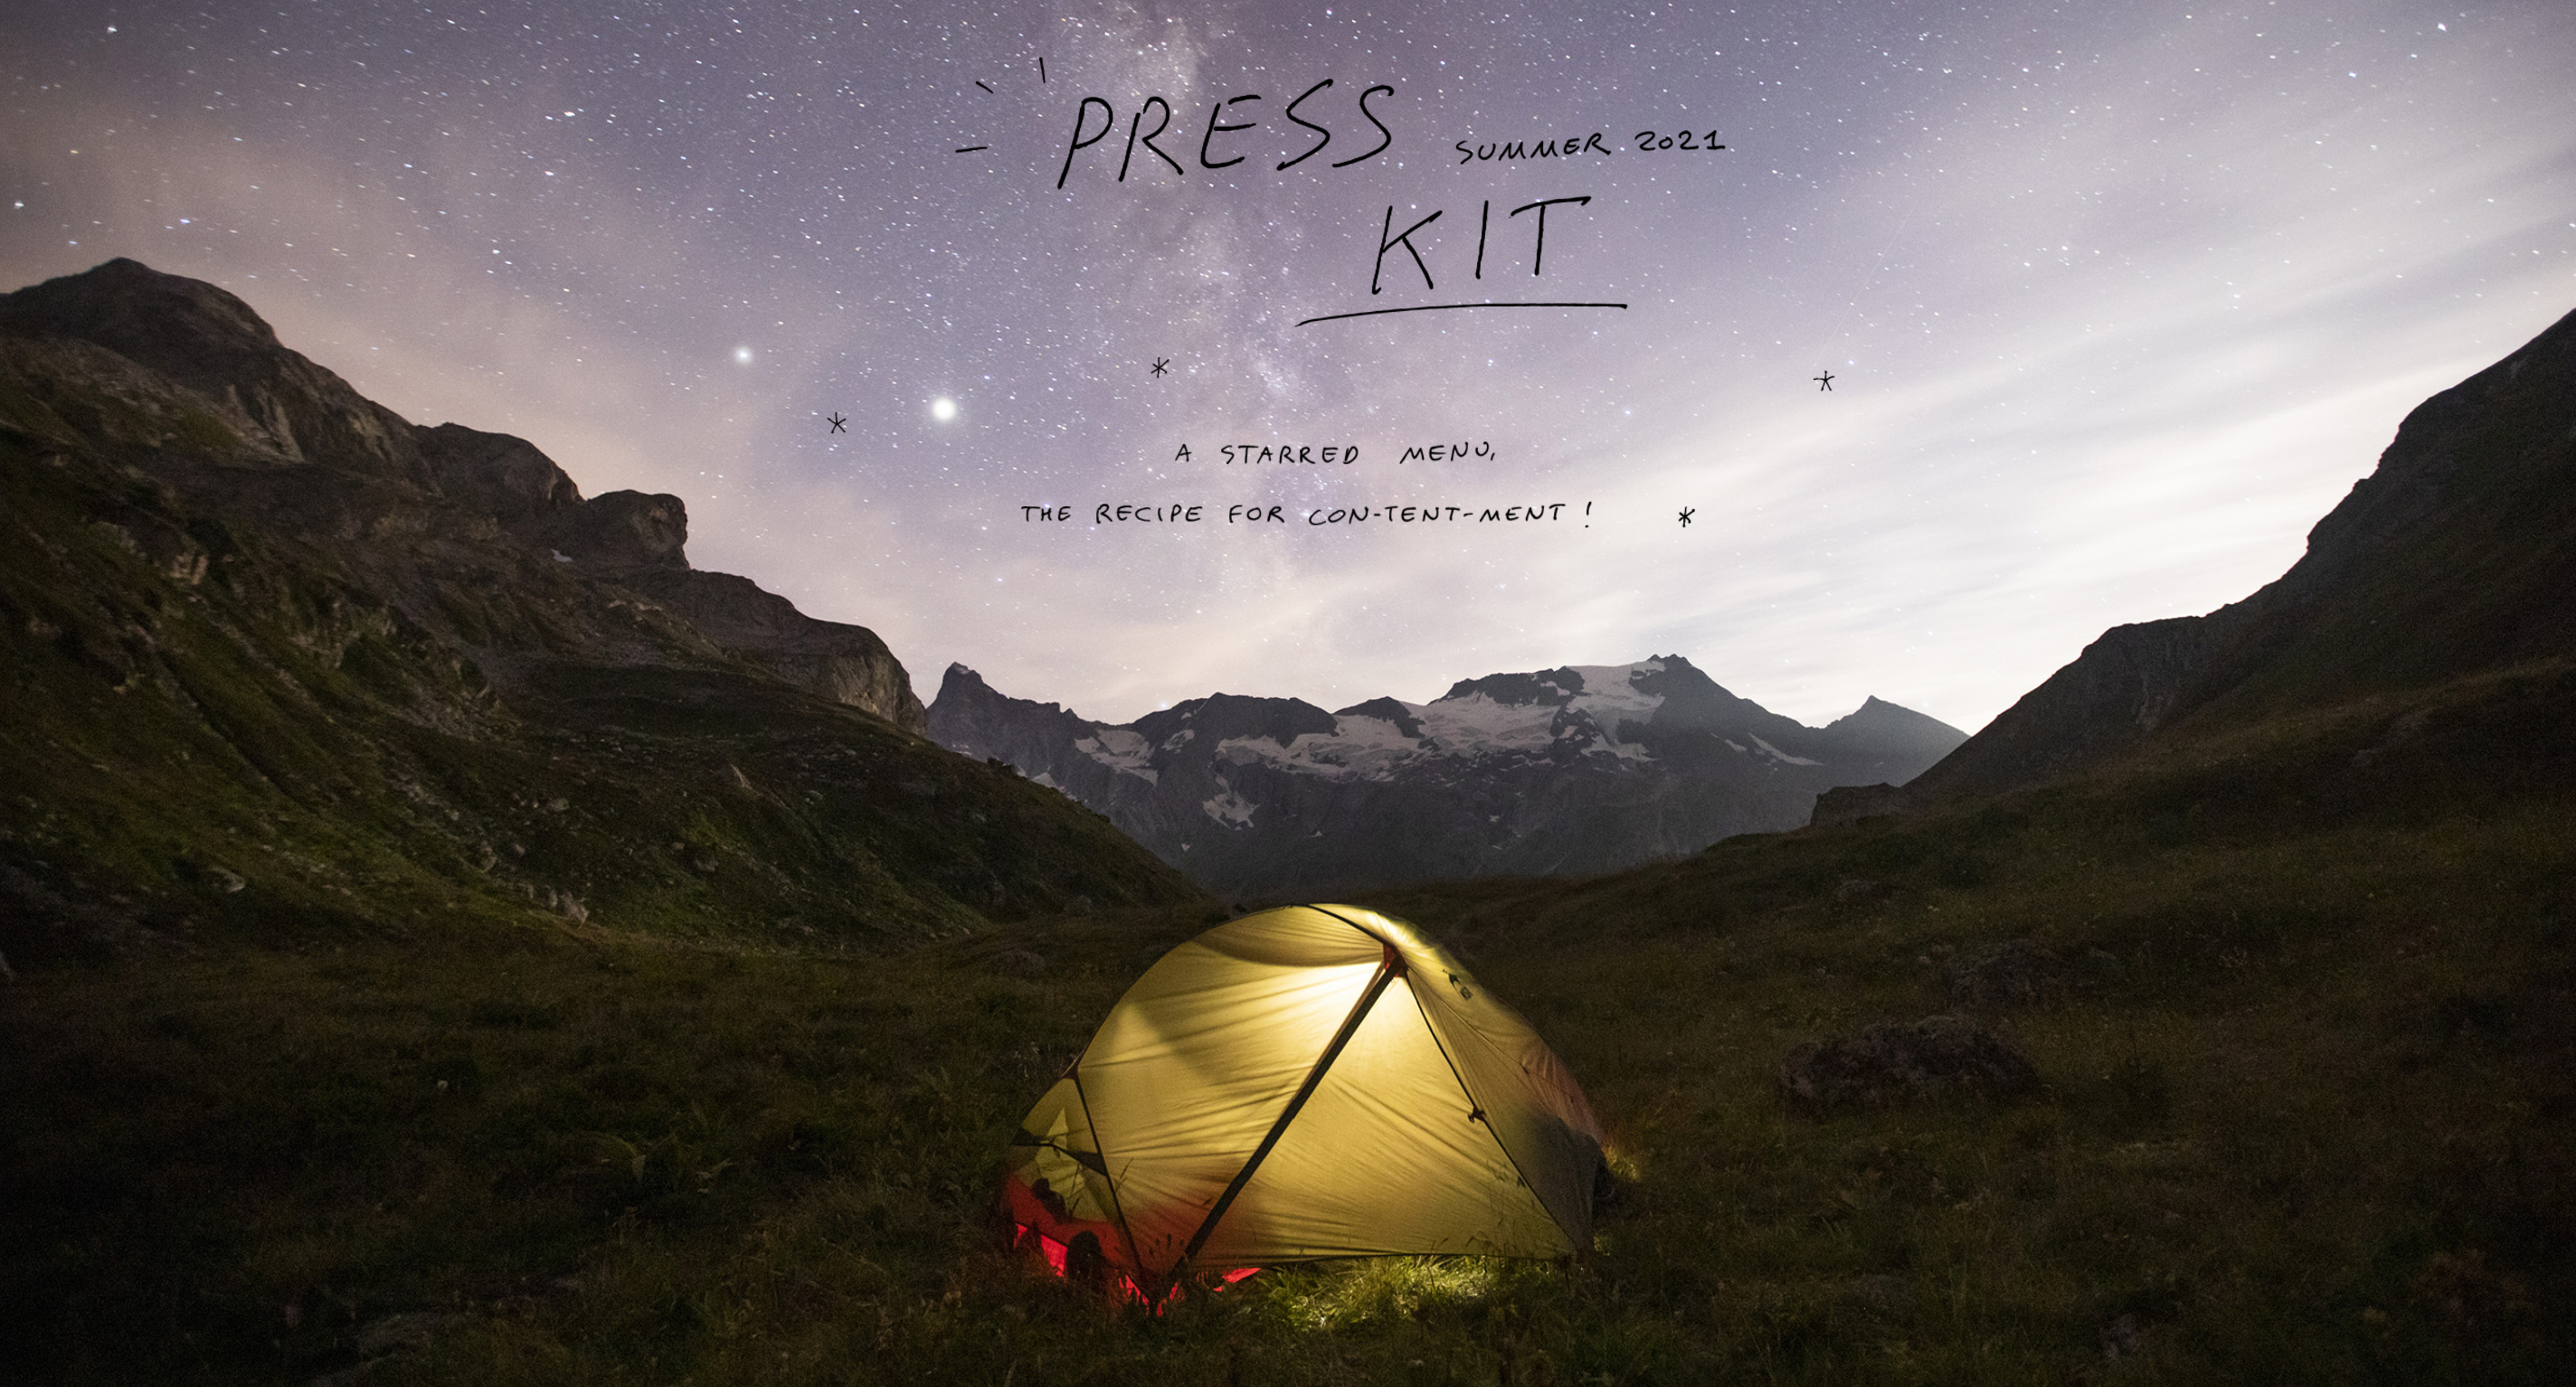 The press kit for summer 2021 is now available. Just ask for the menu!